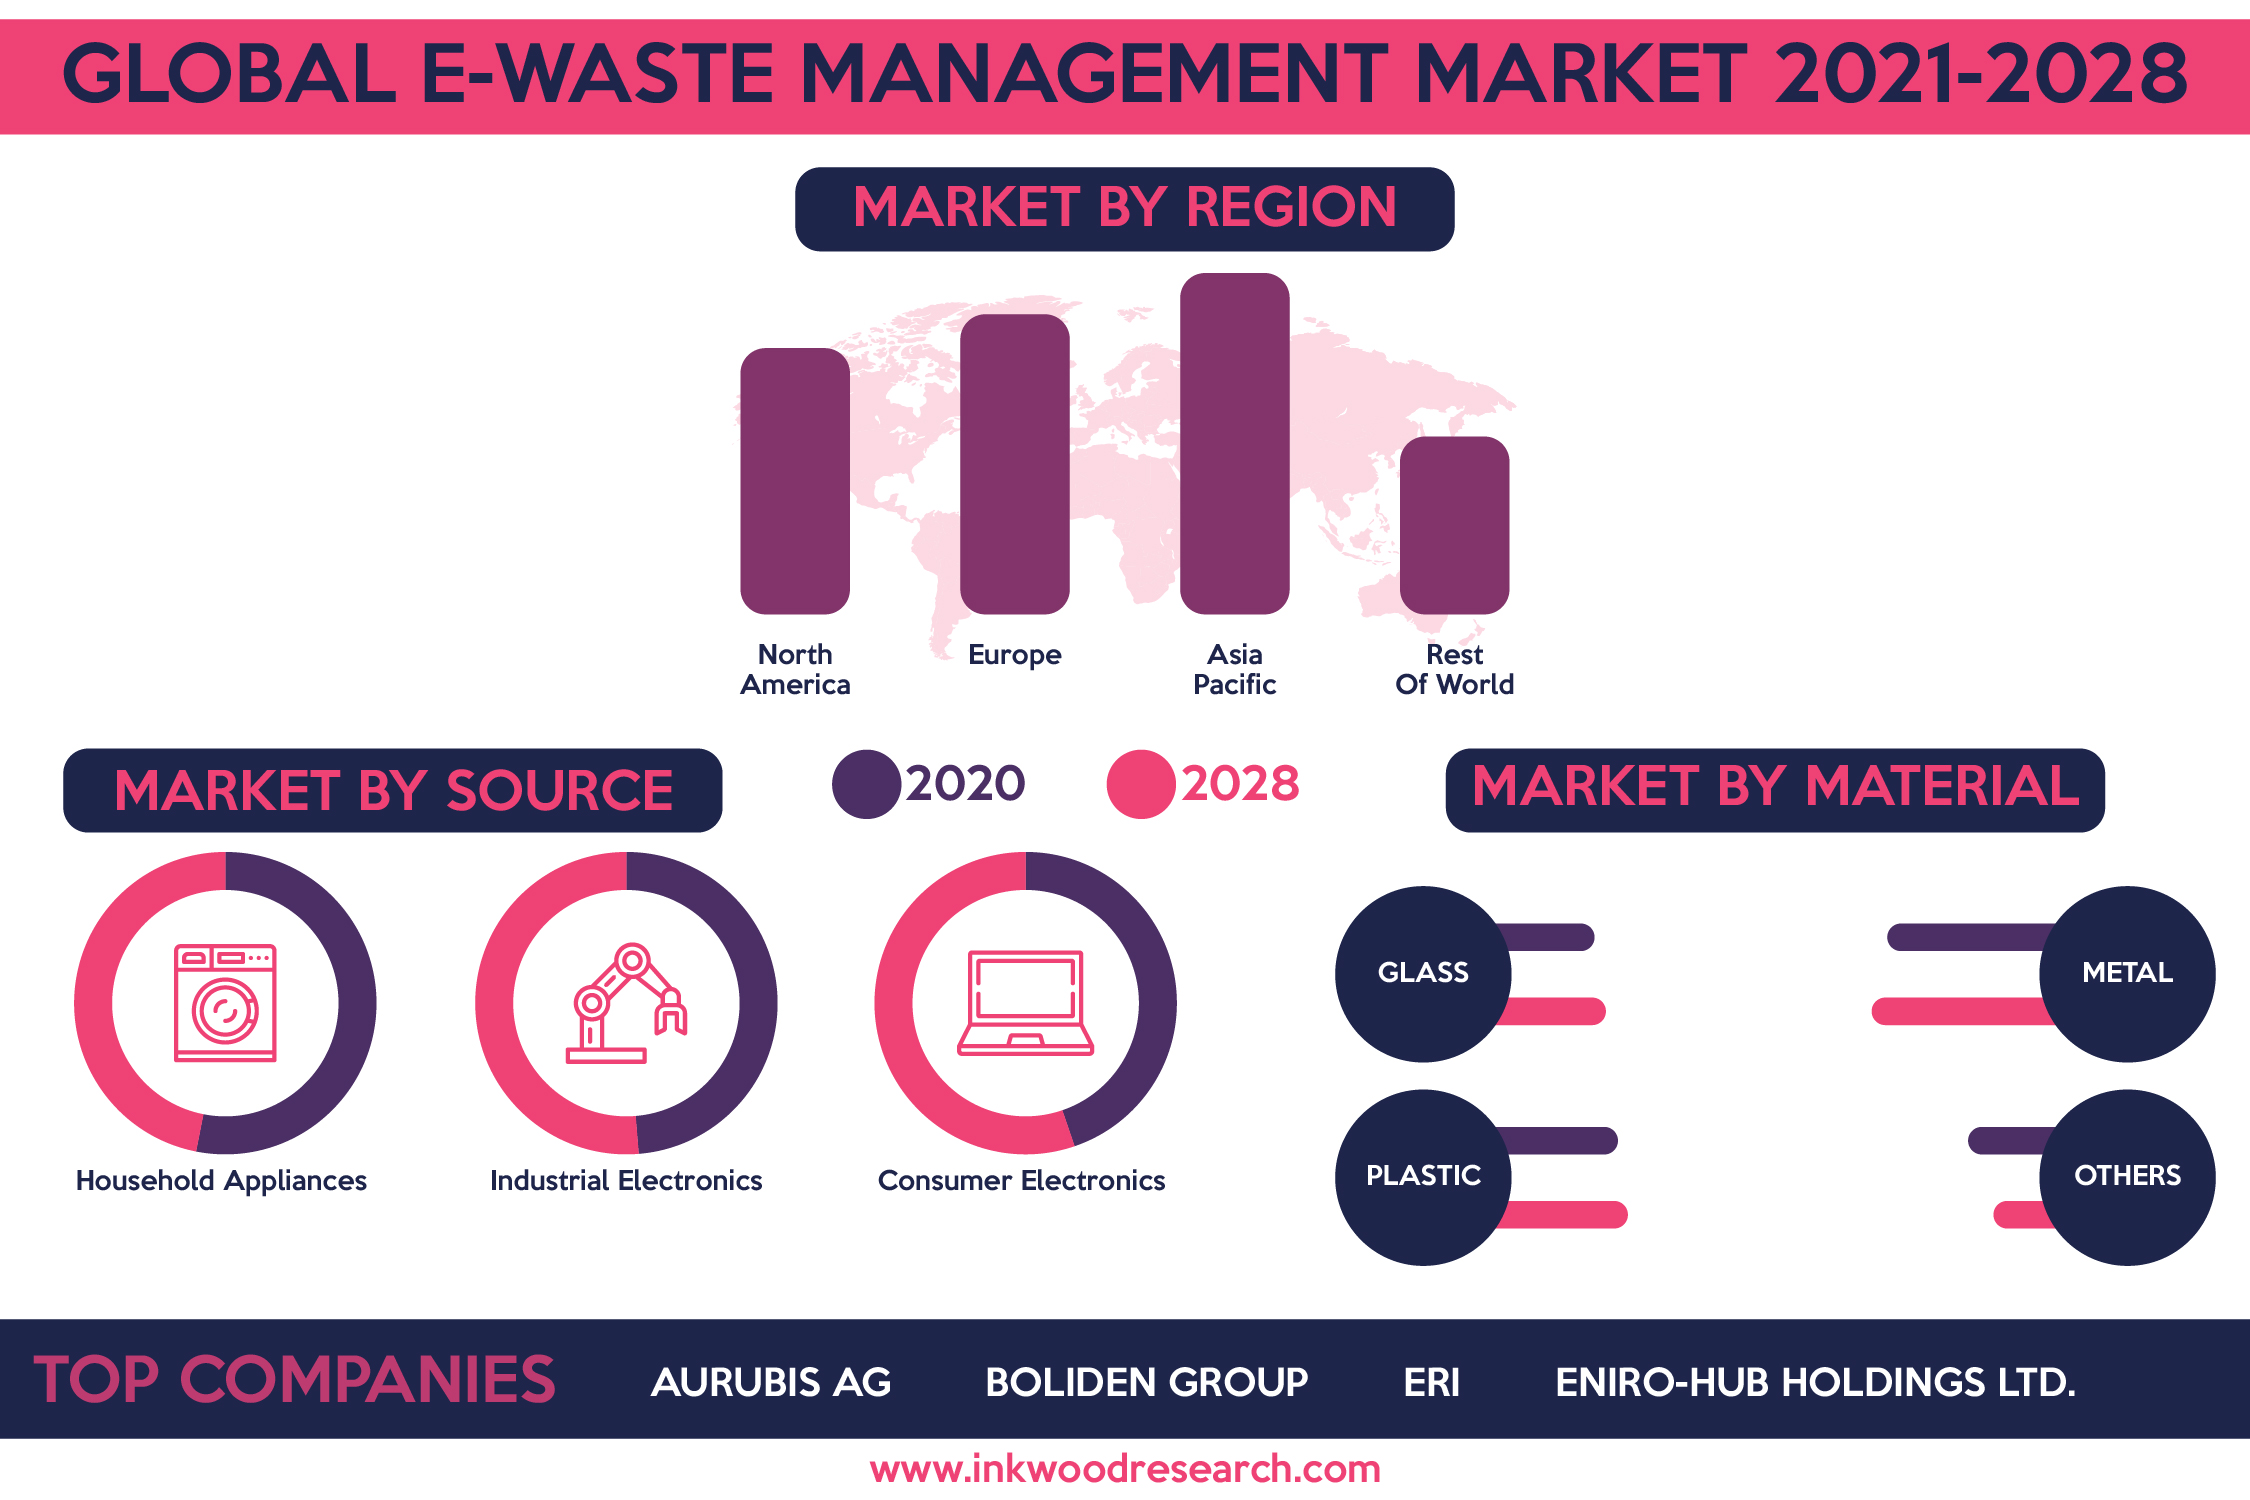 Rise in Obsolescence is Creating Demand for E-Waste Management in the Global Market